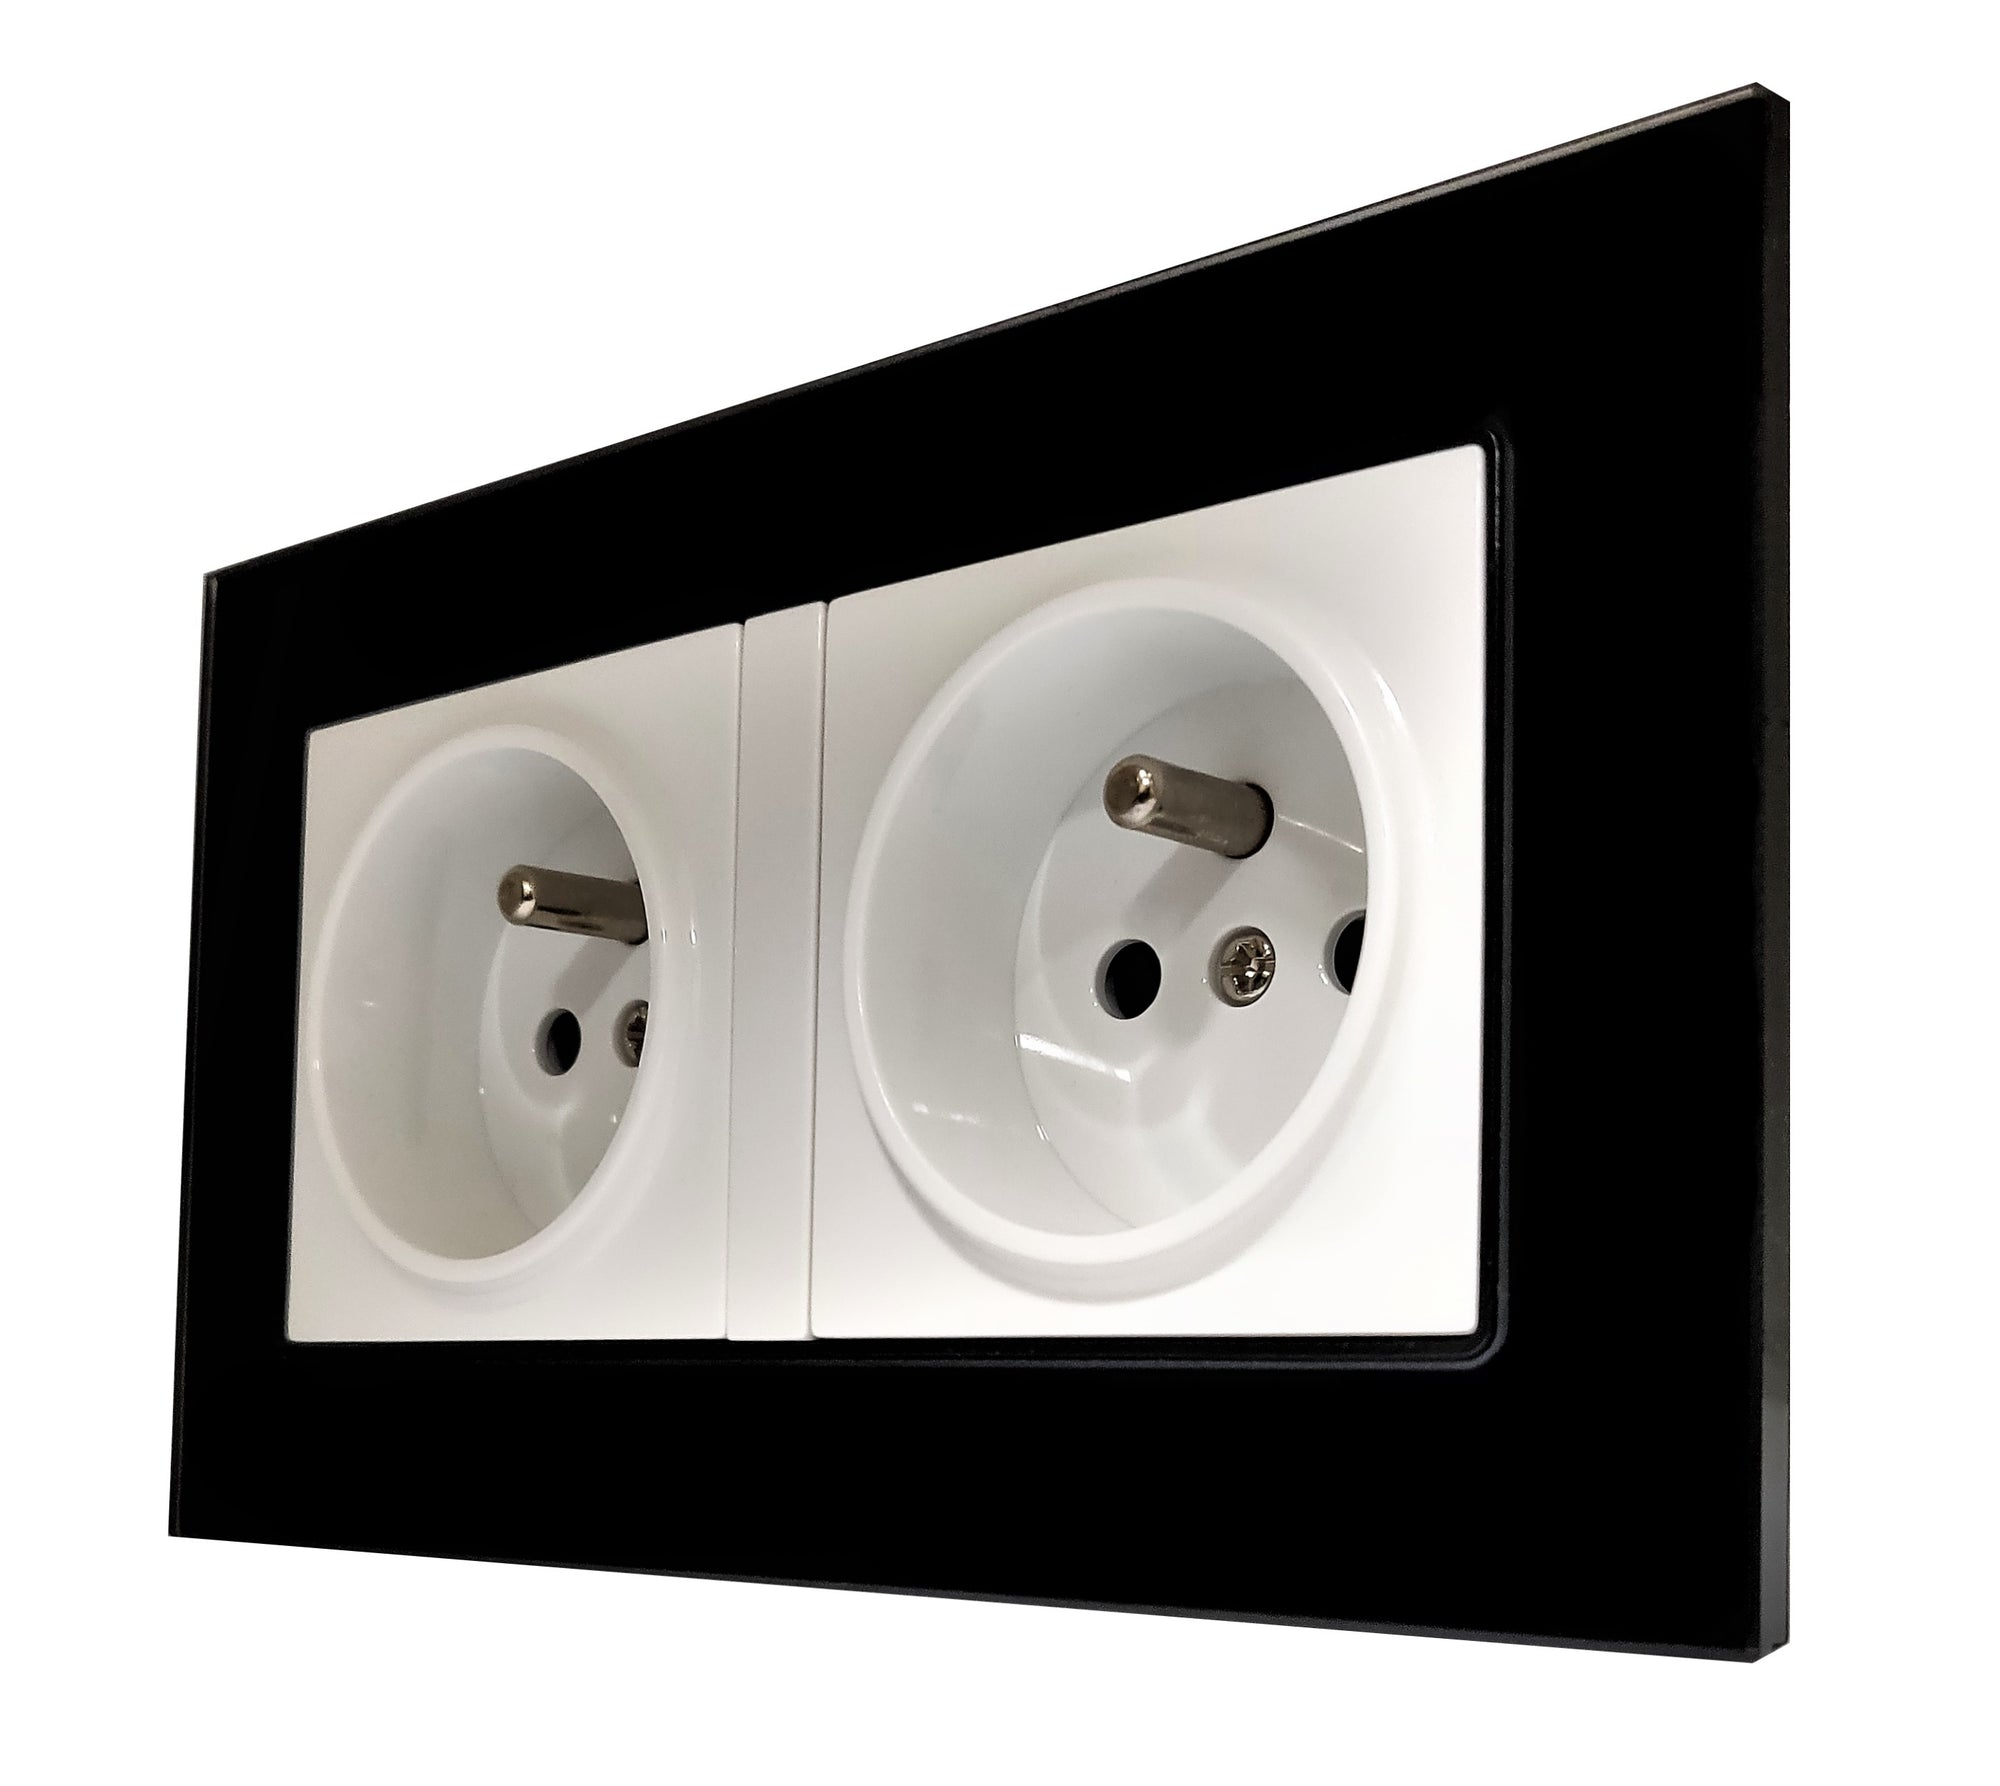 Double French EU 16A 2-Pin AC Wall Power Socket in Black Glass Frame & White Centre